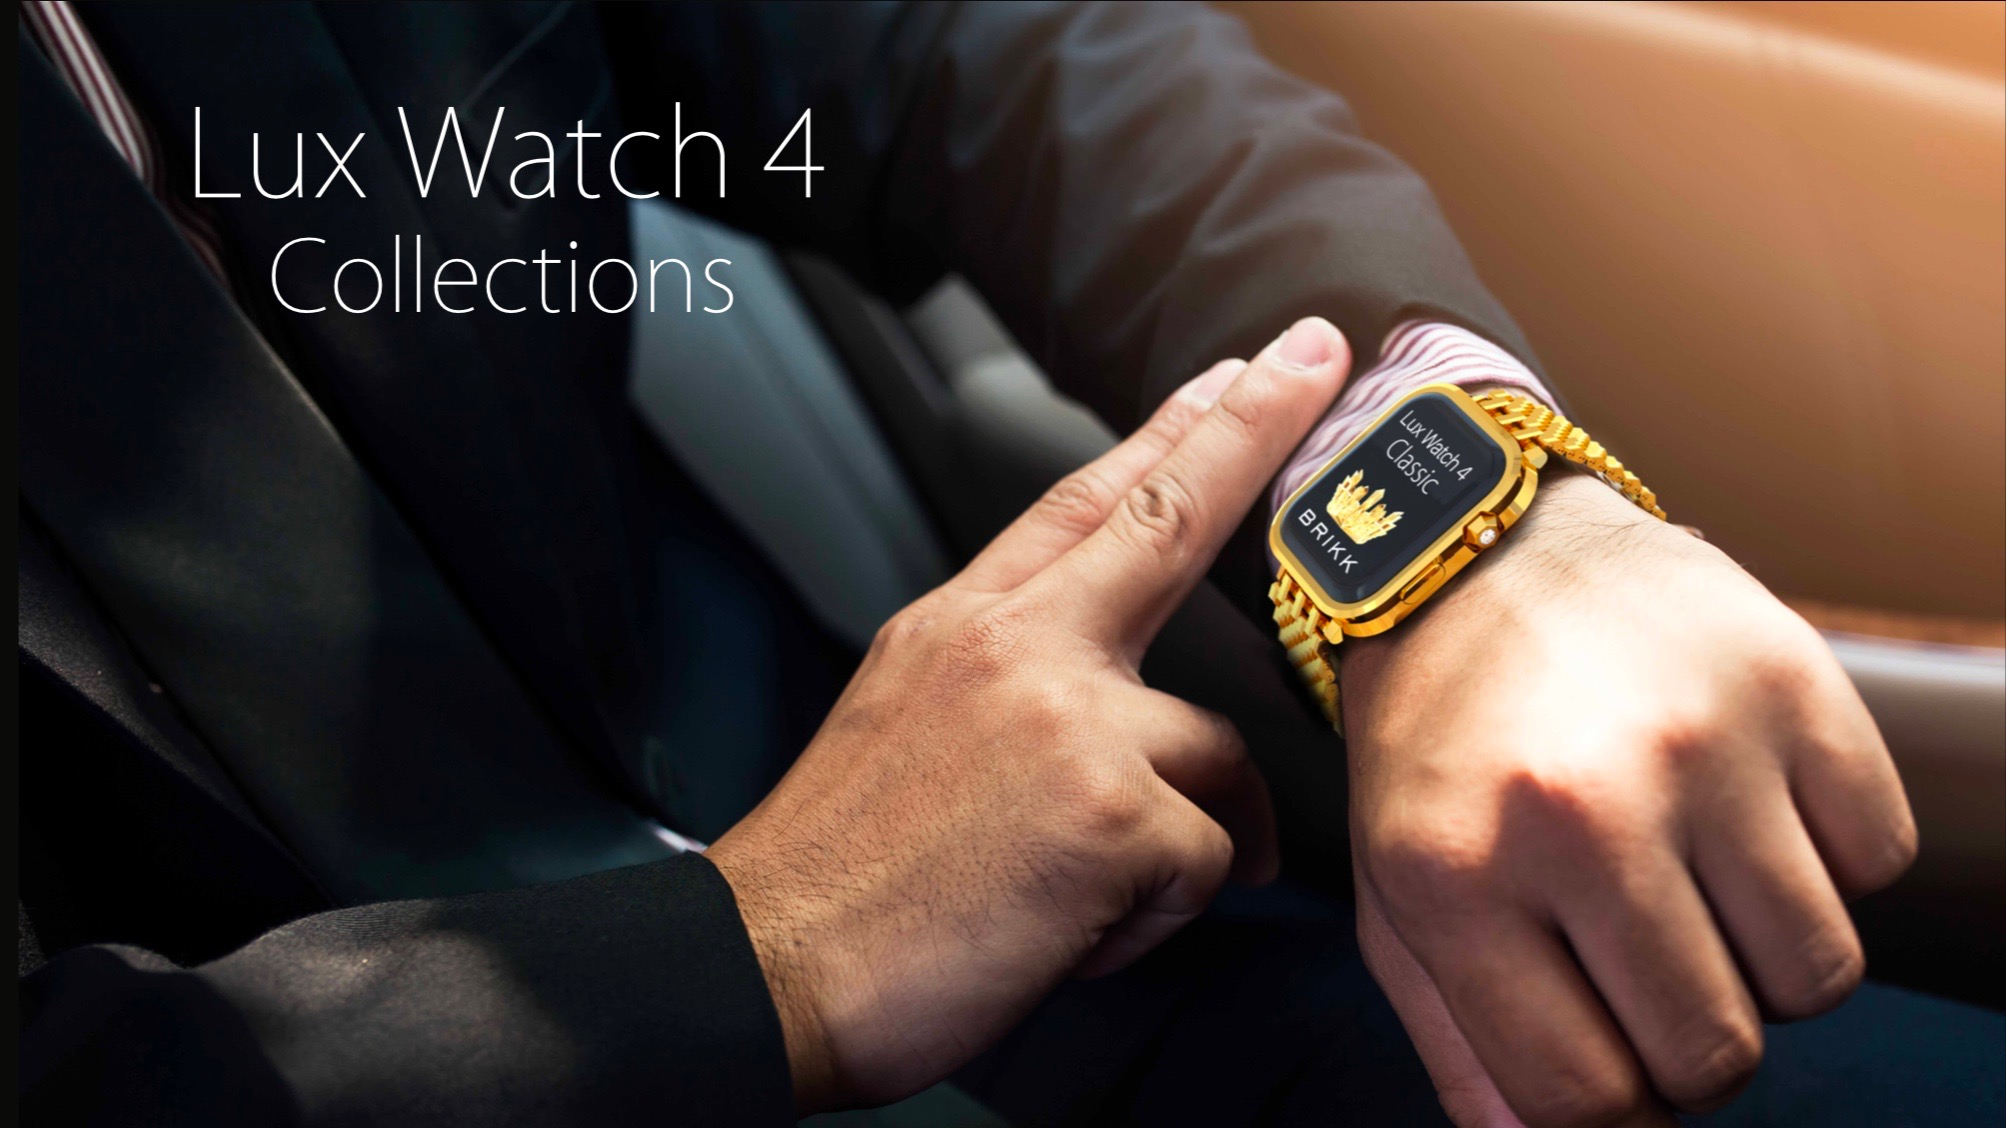 luxury device designer offering custom 18k gold apple watch series 4 for as much as 1 million